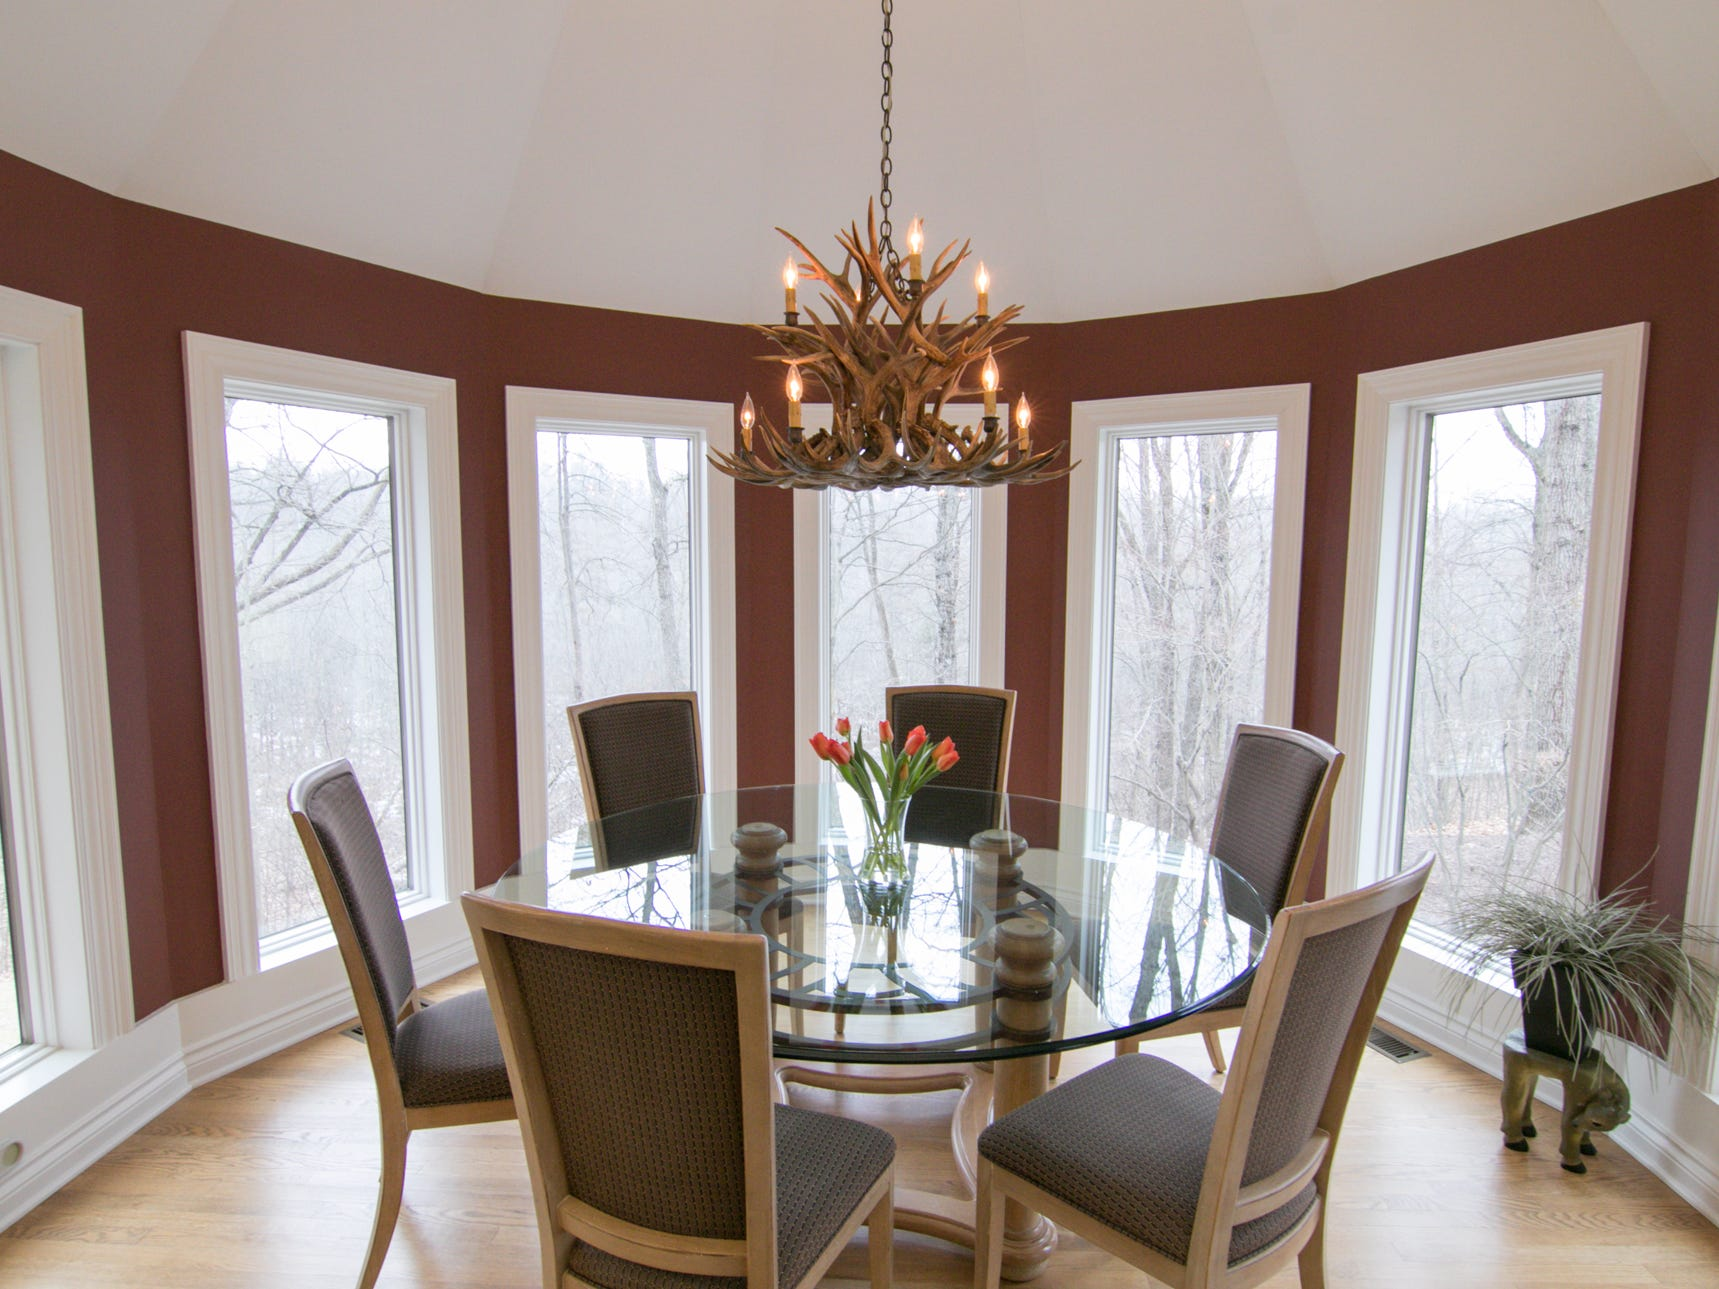 A custom chandelier hangs over a dining space adjoining the kitchen in the Cross Creek Drive home, shown Thursday, Jan. 17, 2019.